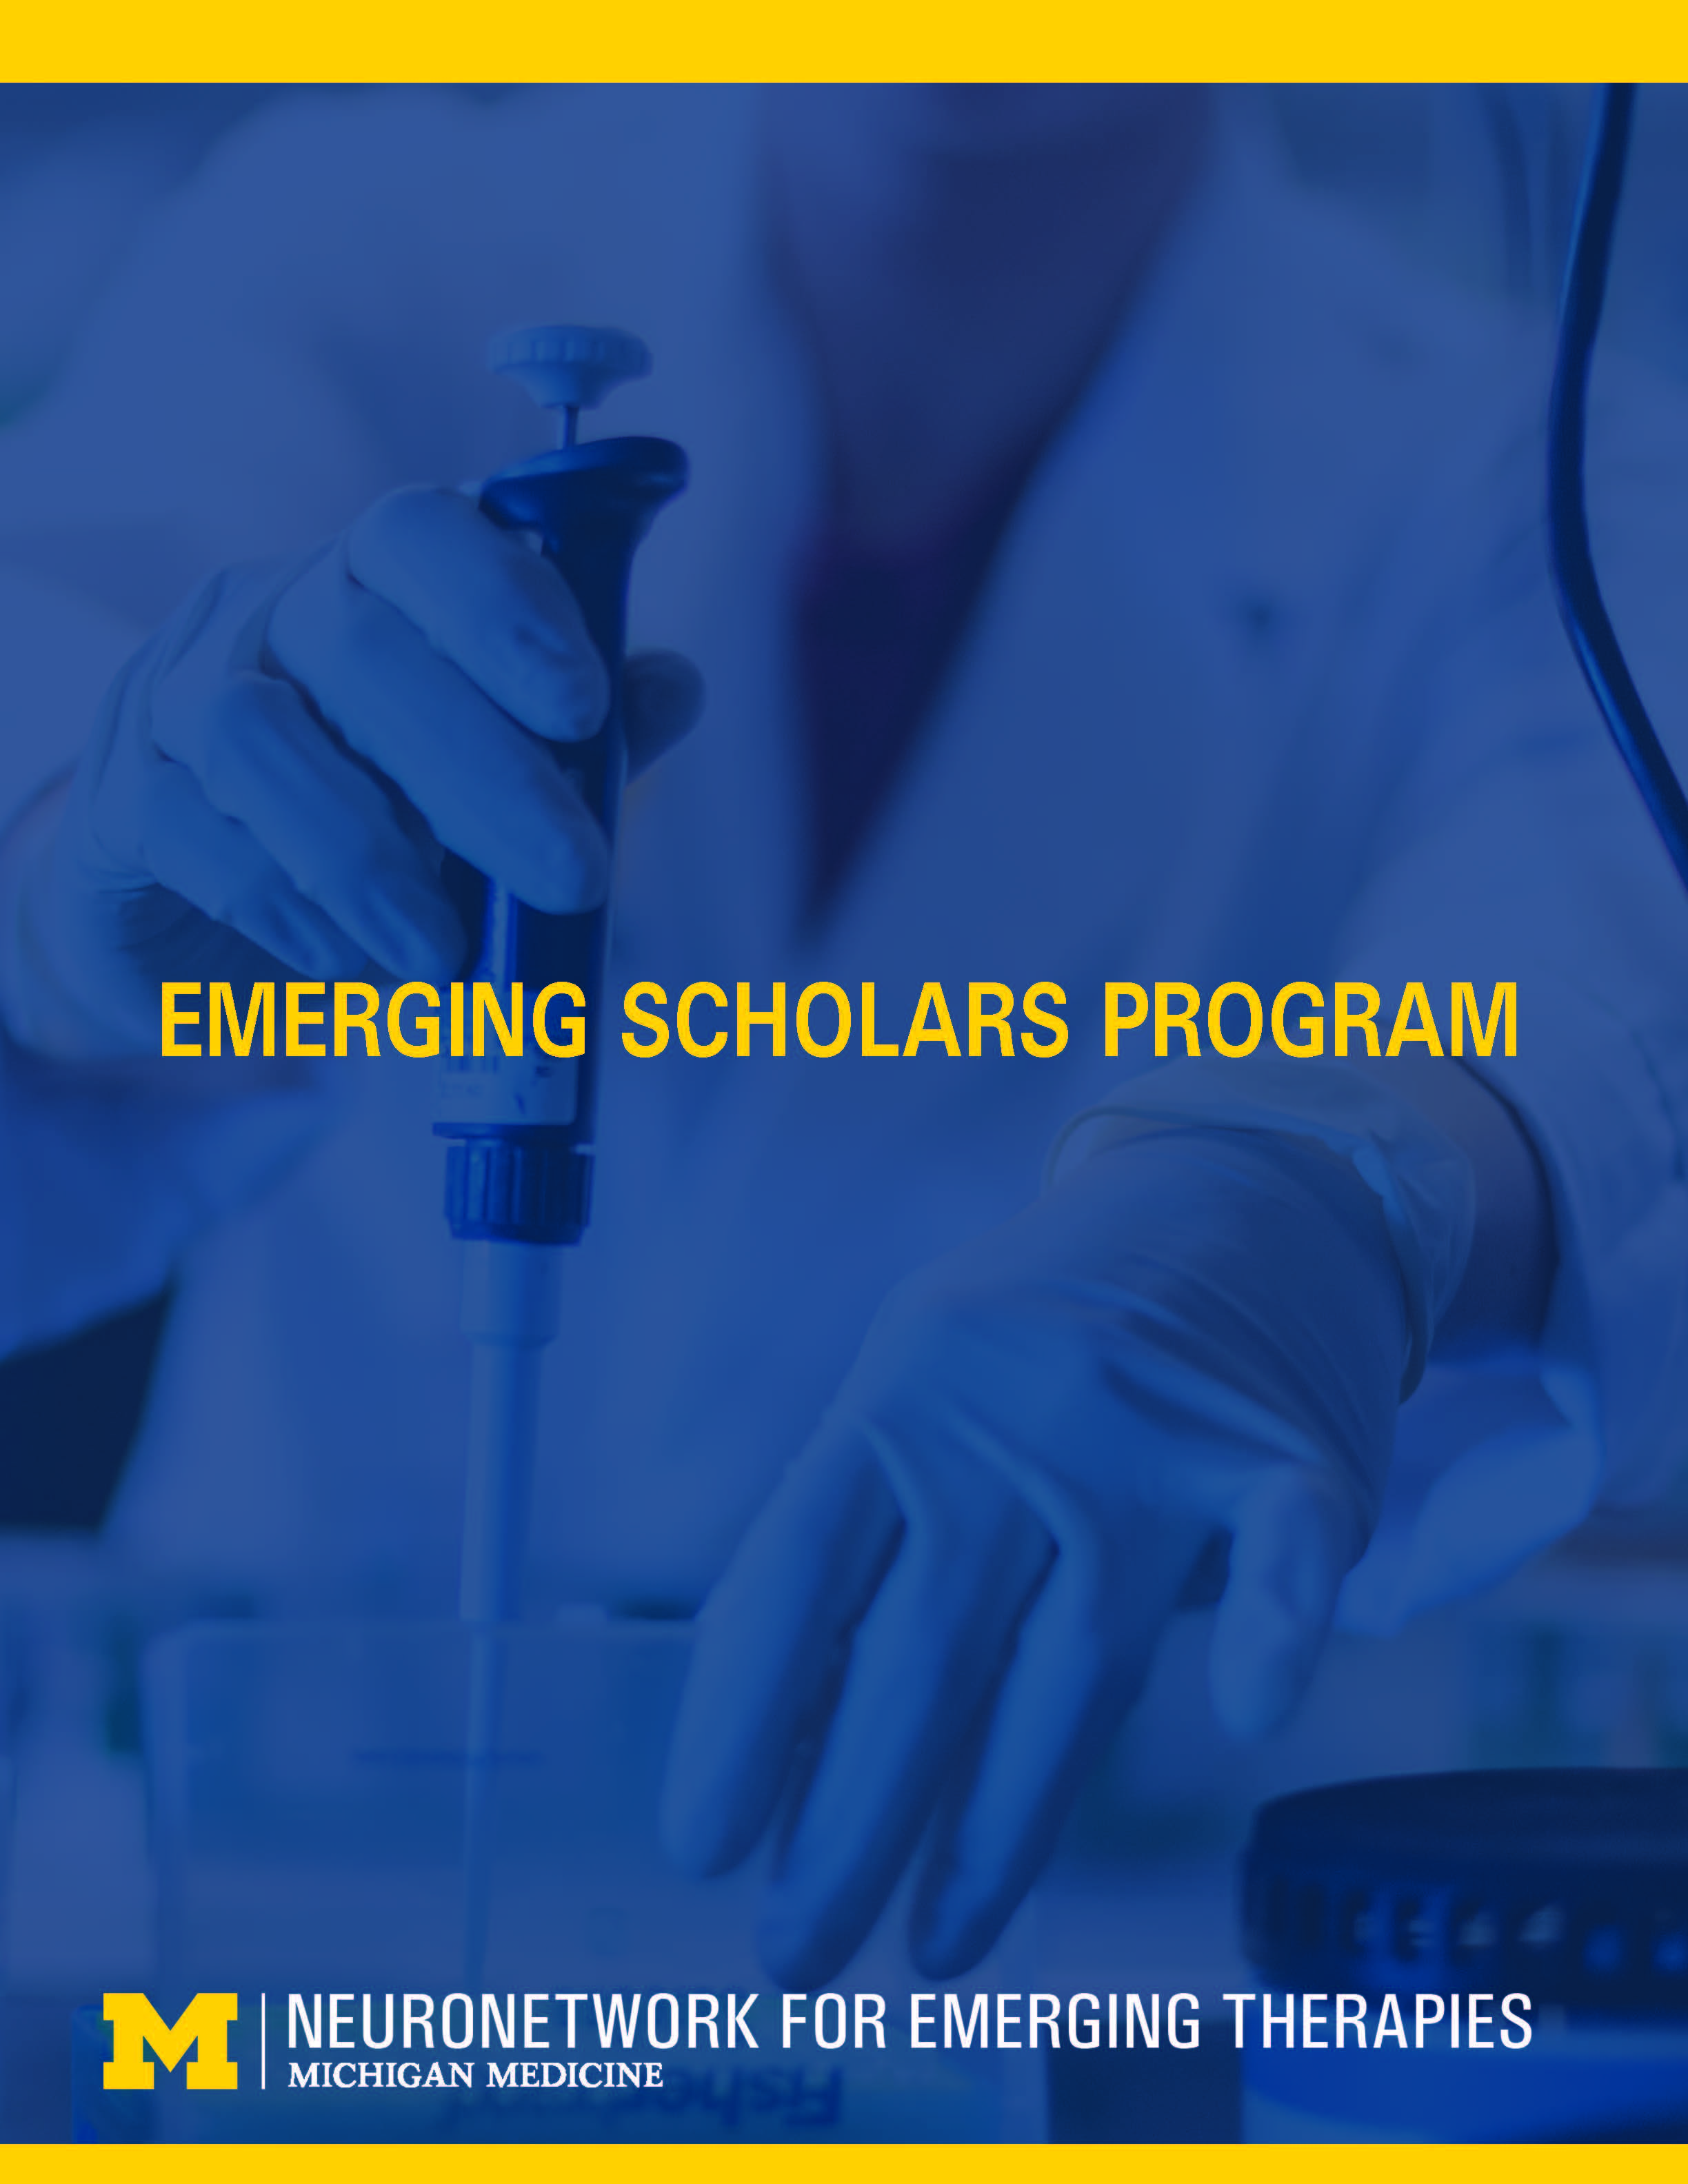 NeuroNetwork for Emerging Therapies Emerging Scholars Brochure Cover